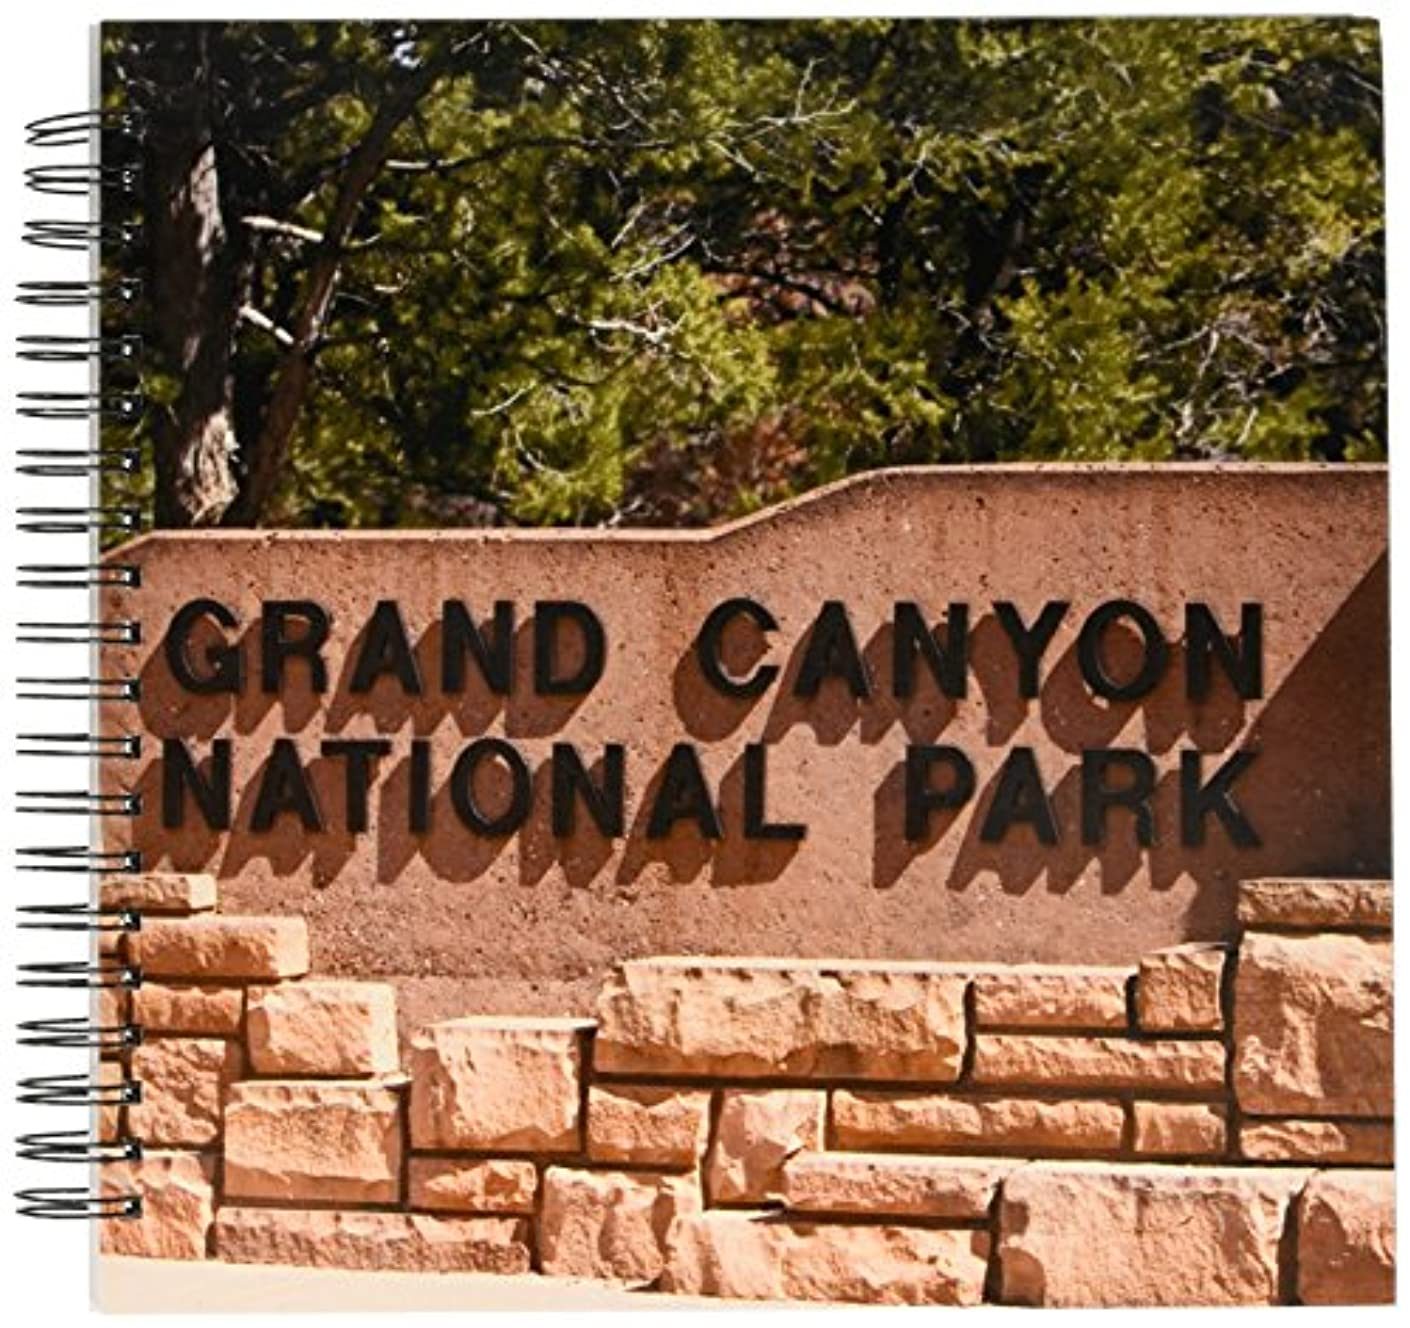 3dRose db_87840_2 Grand Canyon National Park, Arizona - US03 DFR0033 - David R. Frazier - Memory Book, 12 by 12-Inch